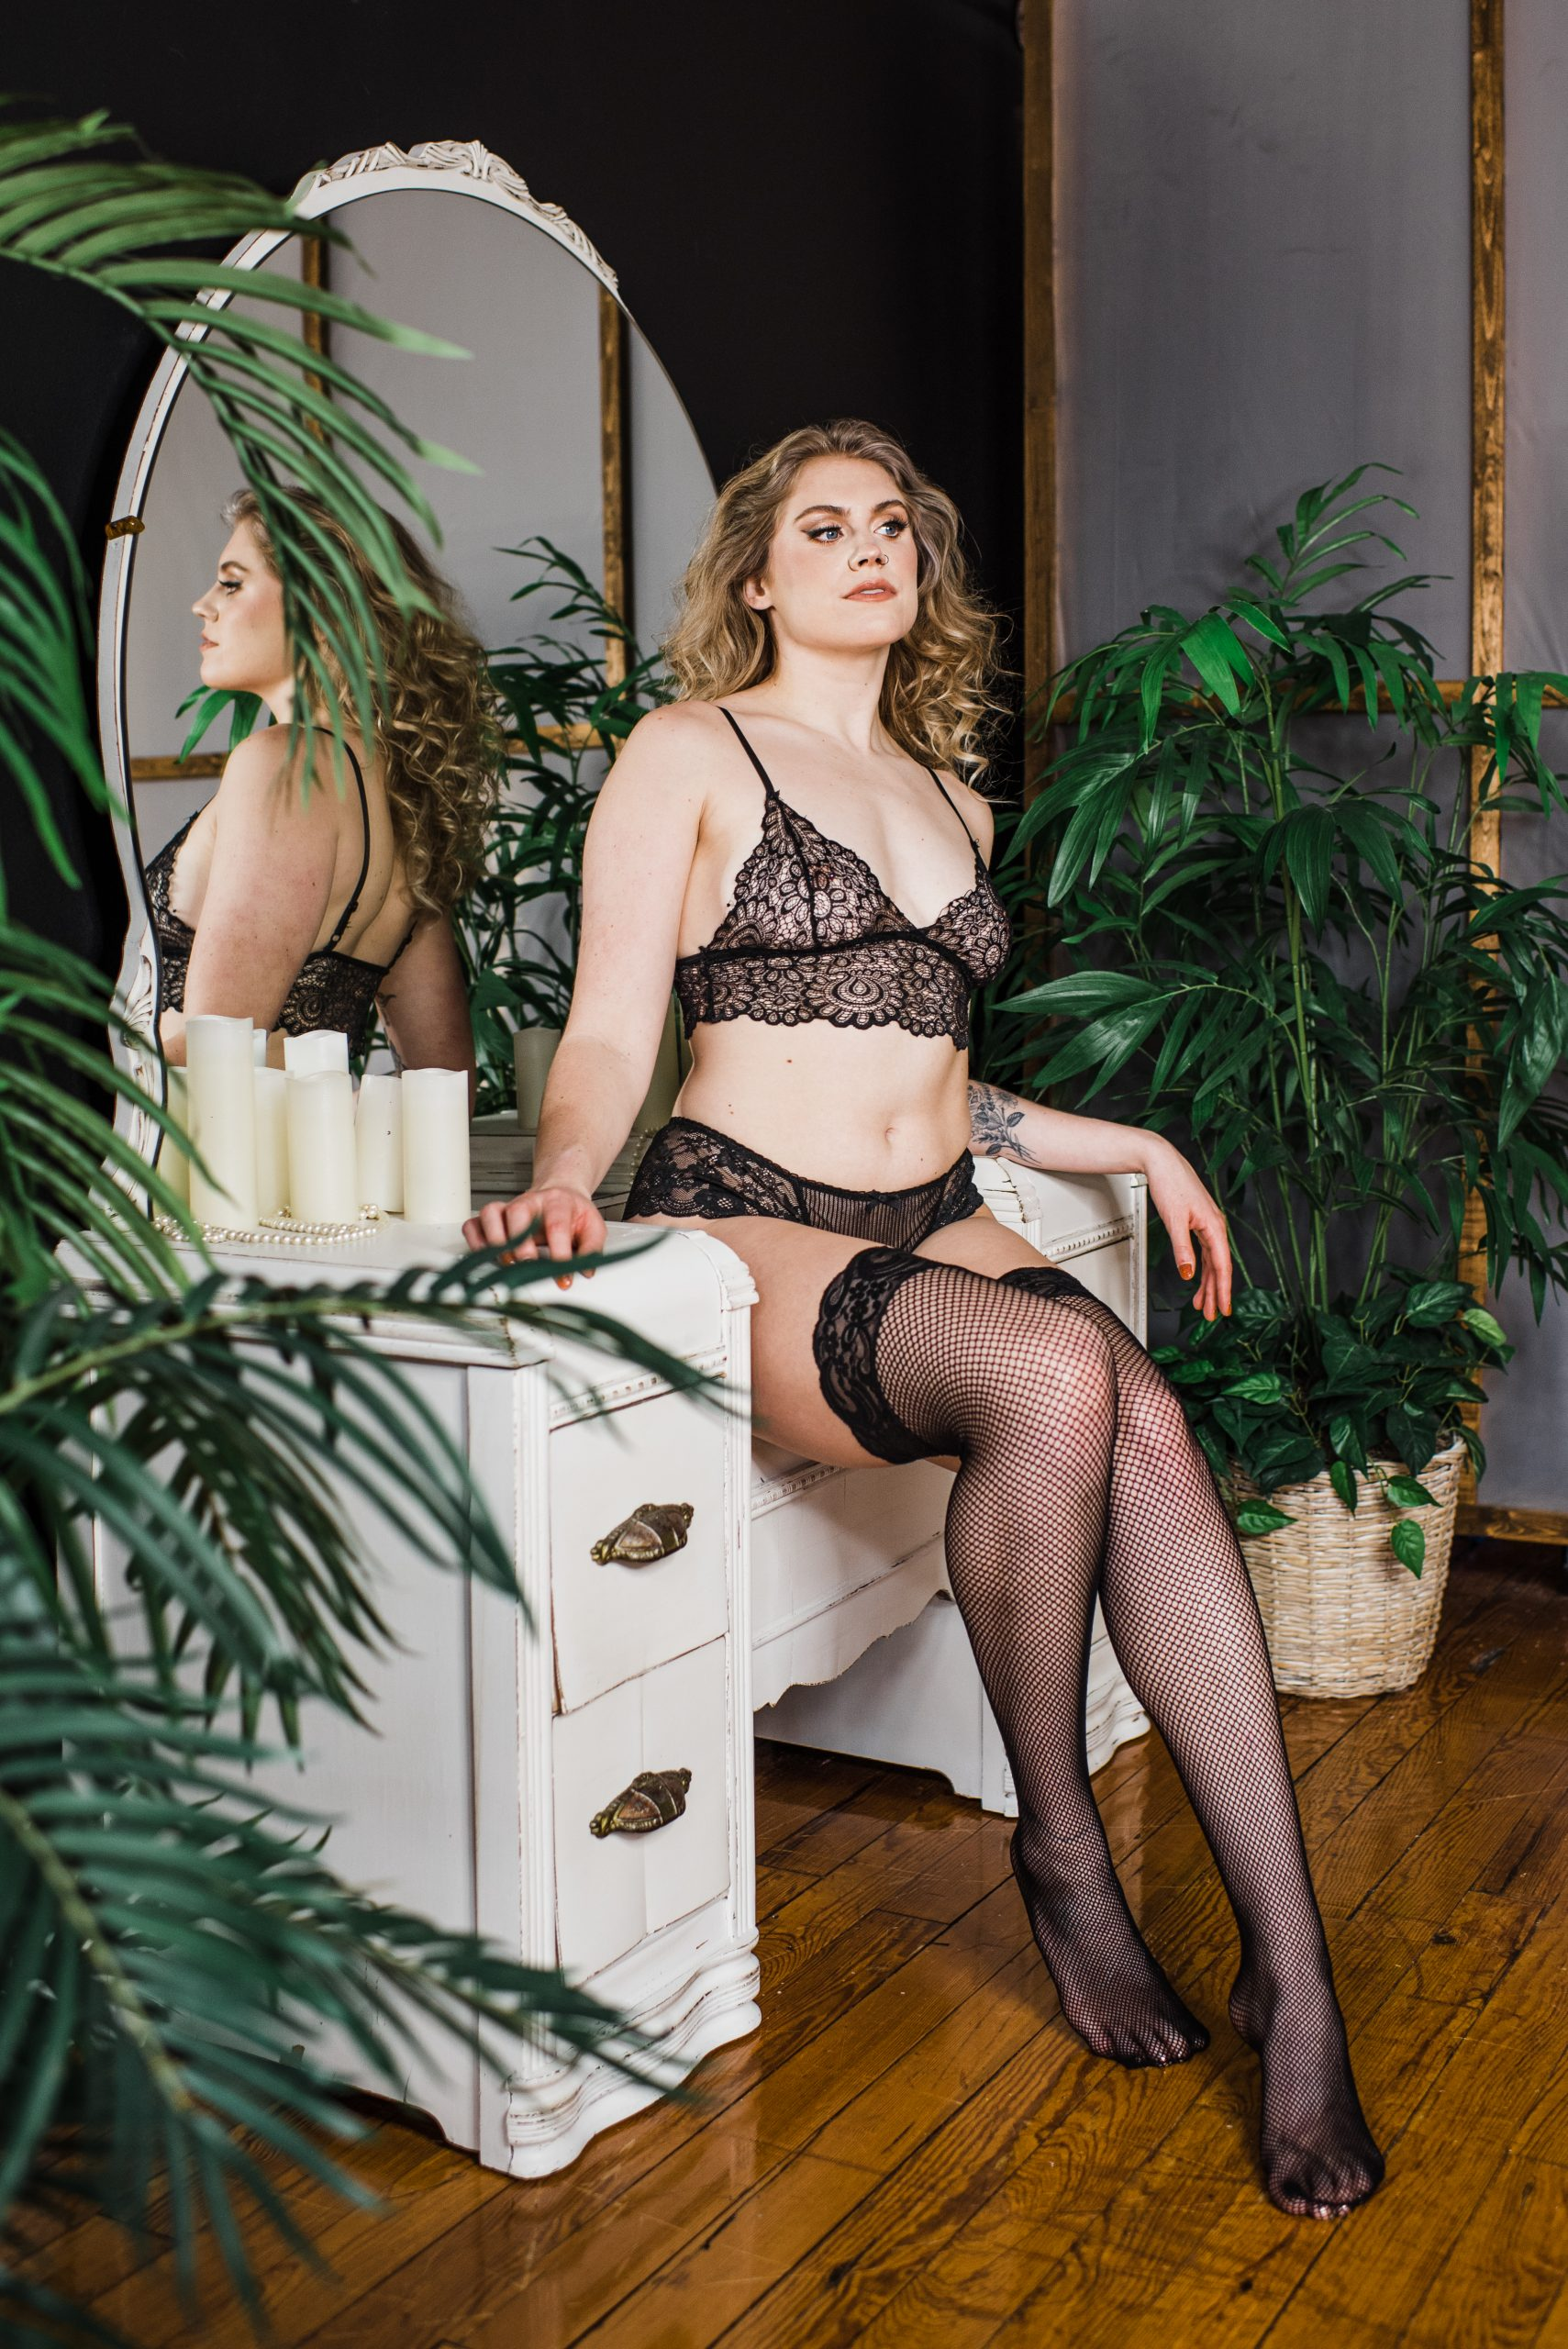 Boudoir and empowerment photography by Easterday Creative | Editorial photographer and visual storyteller for rad humans and unique brands | Charlotte, NC